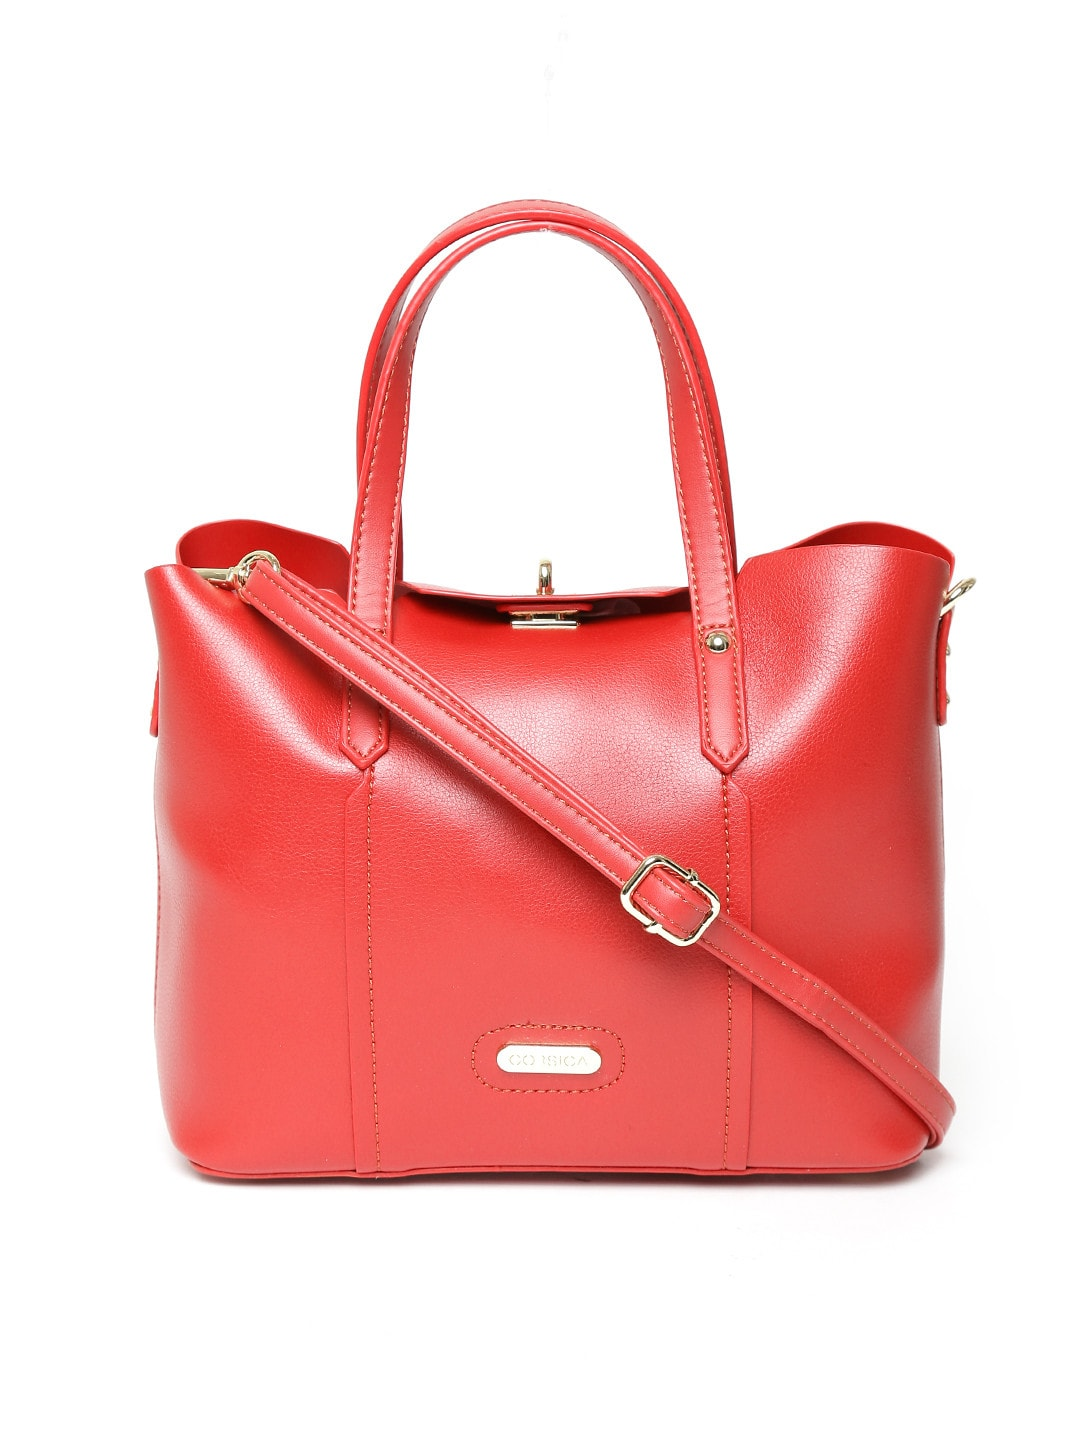 Red Handbag with Strap